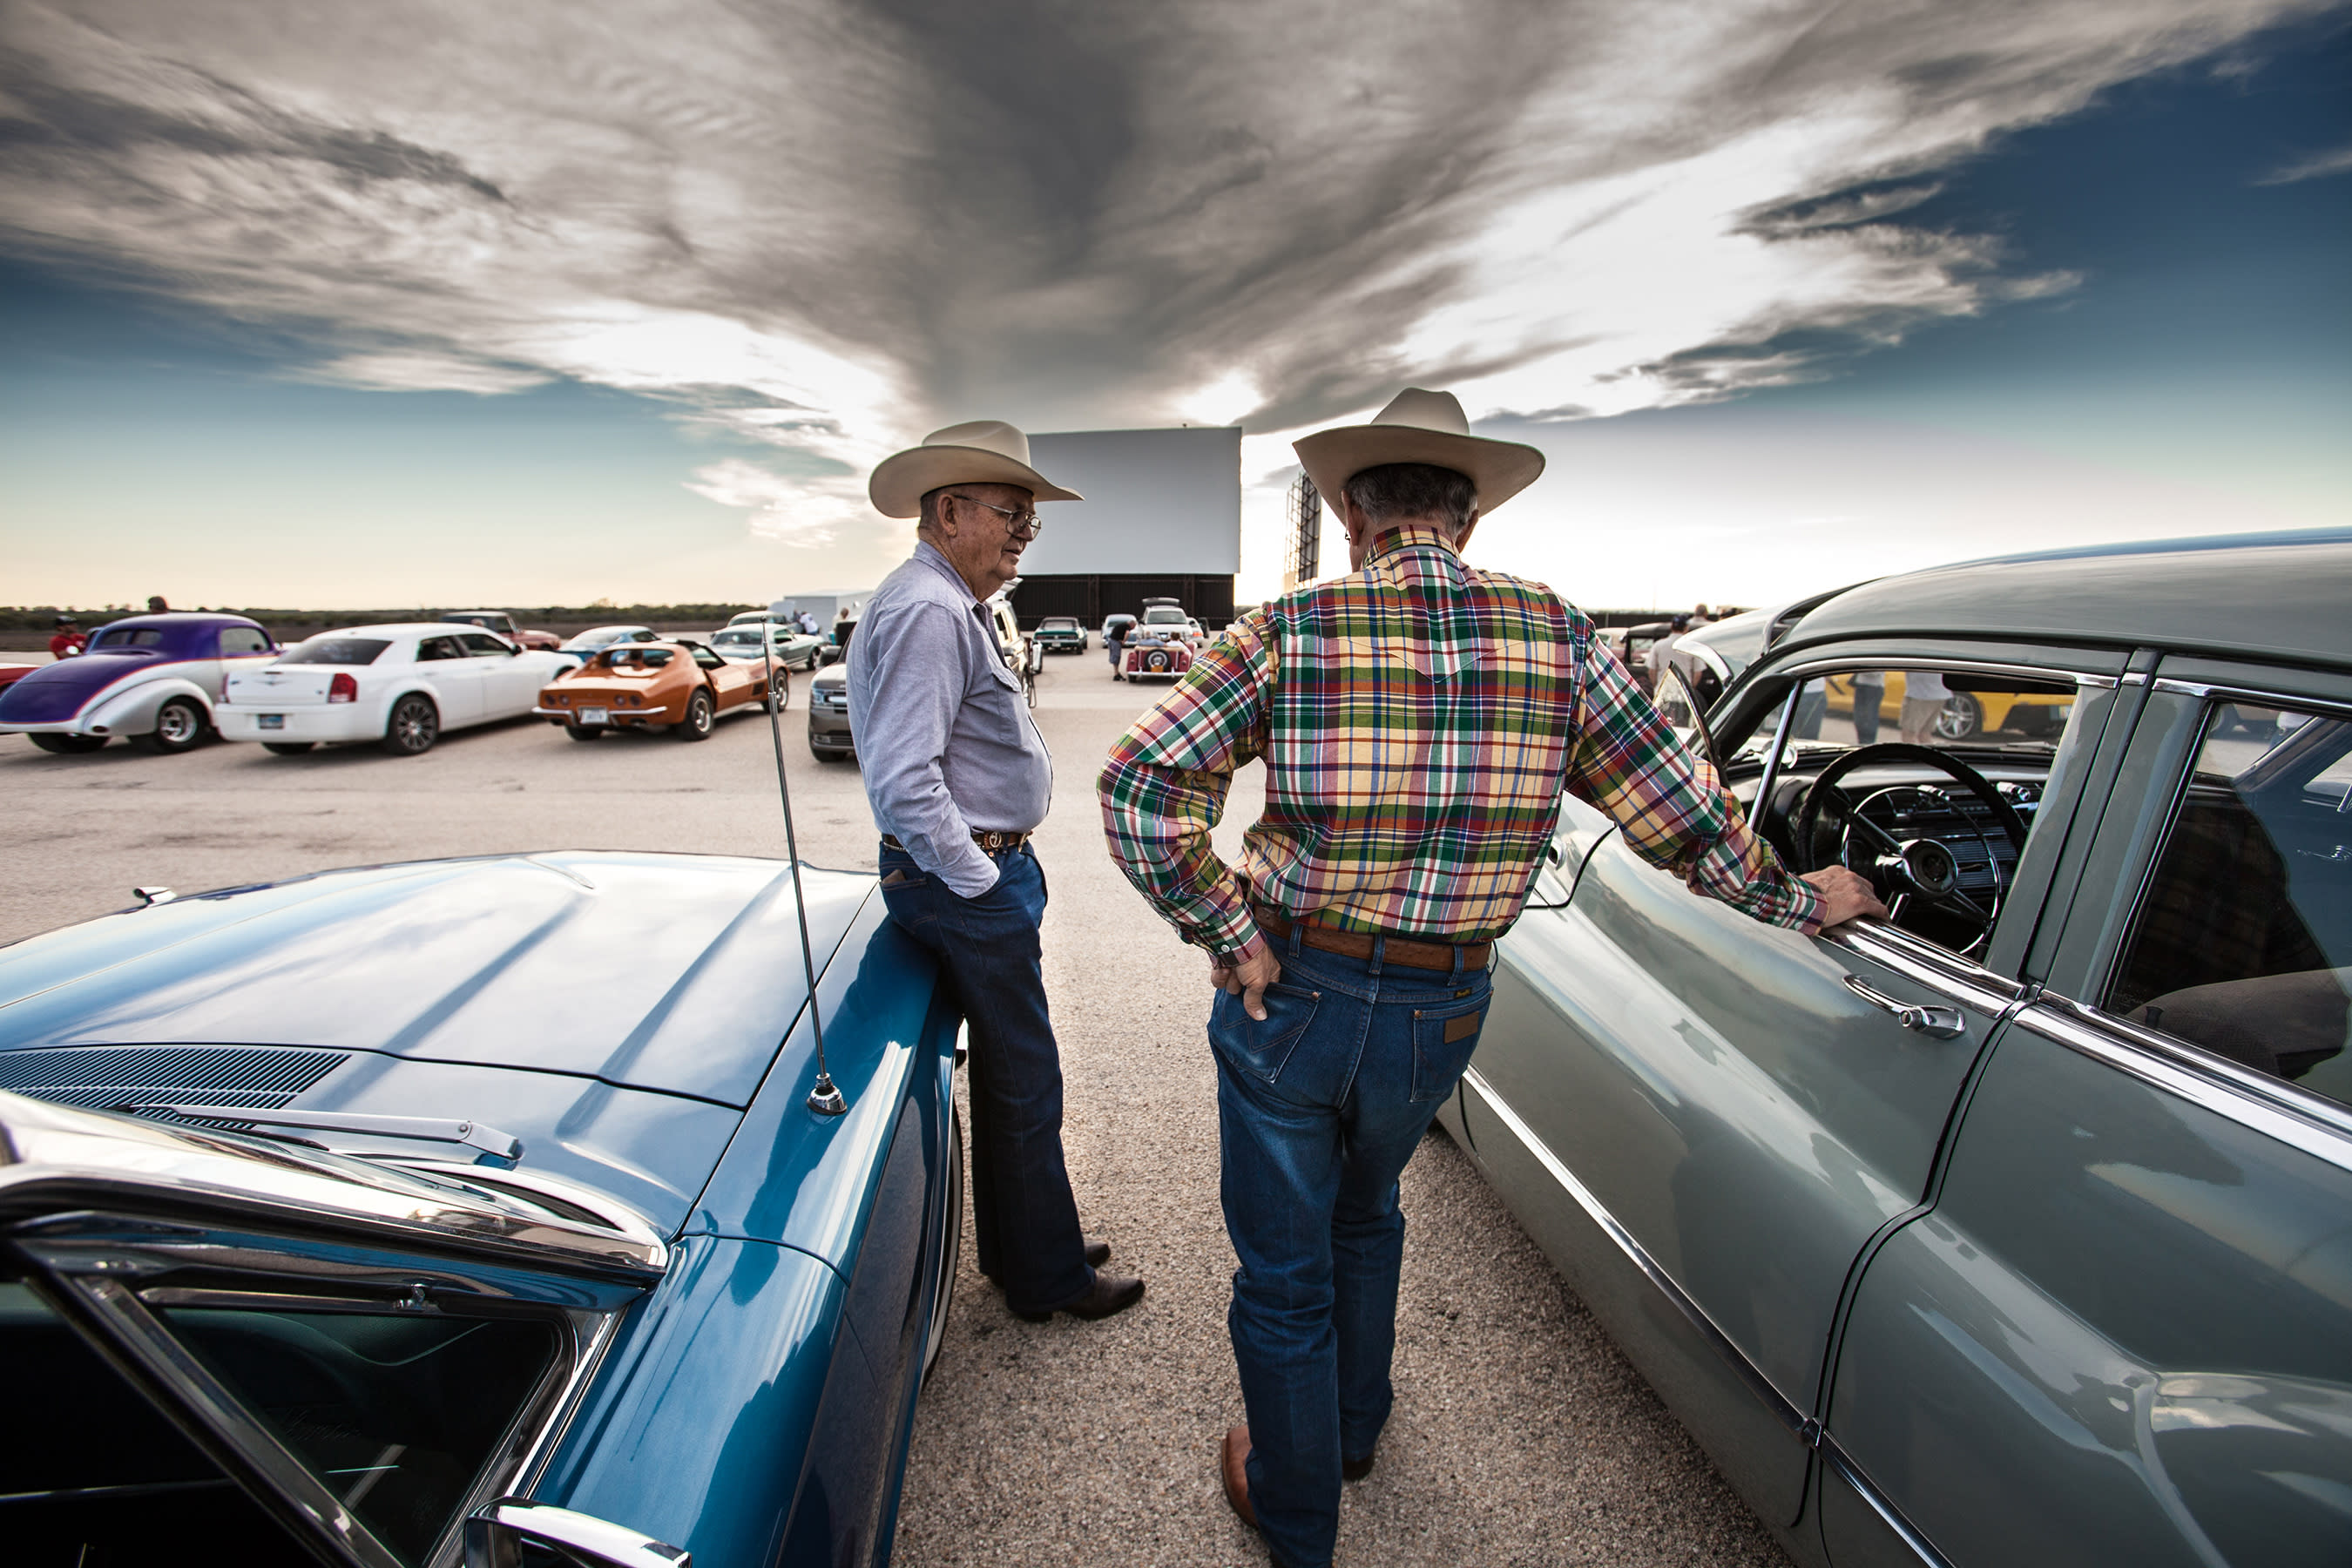 Stars & Stripes Drive-In offers a slice of Americana with all the digital cinema luxuries. They are one of only a few drive-in theaters in Texas, boasting the largest screens measuring 90' wide.